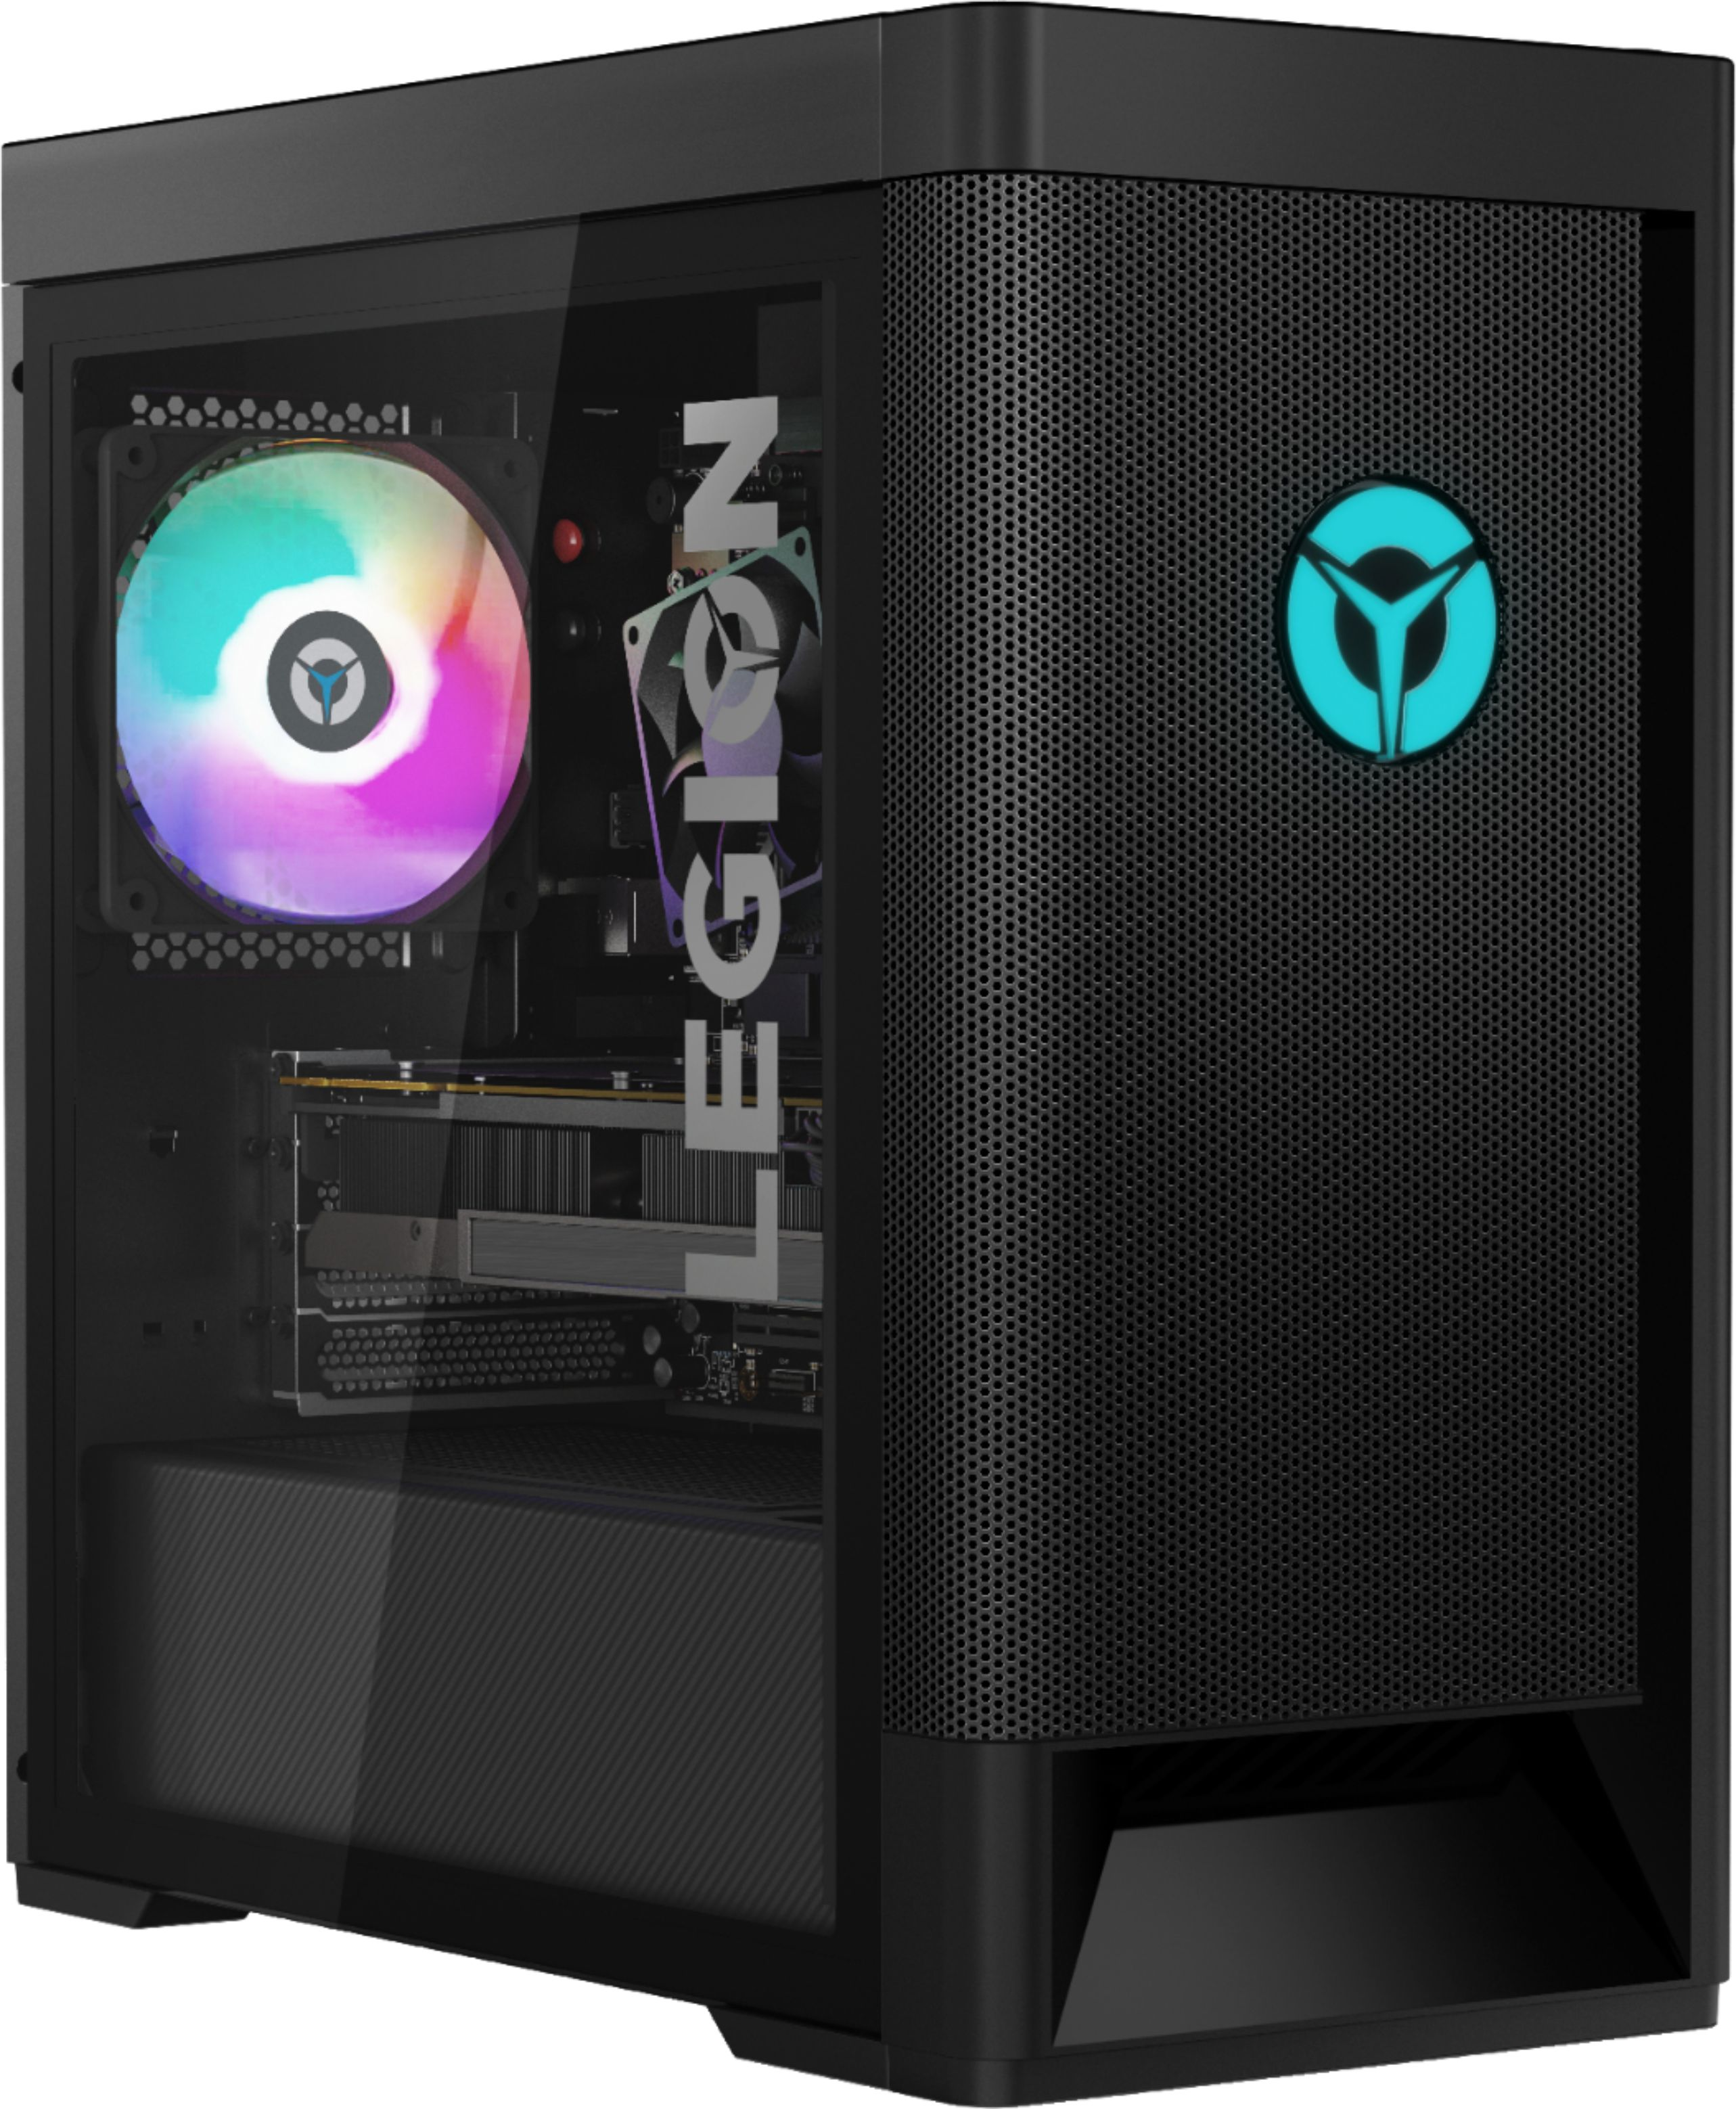 Front Zoom. Lenovo - Legion Tower 5 AMD Gaming Desktop - AMD Ryzen 5-3600 - 8GB Memory - NVIDIA GeForce GTX 1650 Super - 512GB SSD - Phantom Black.